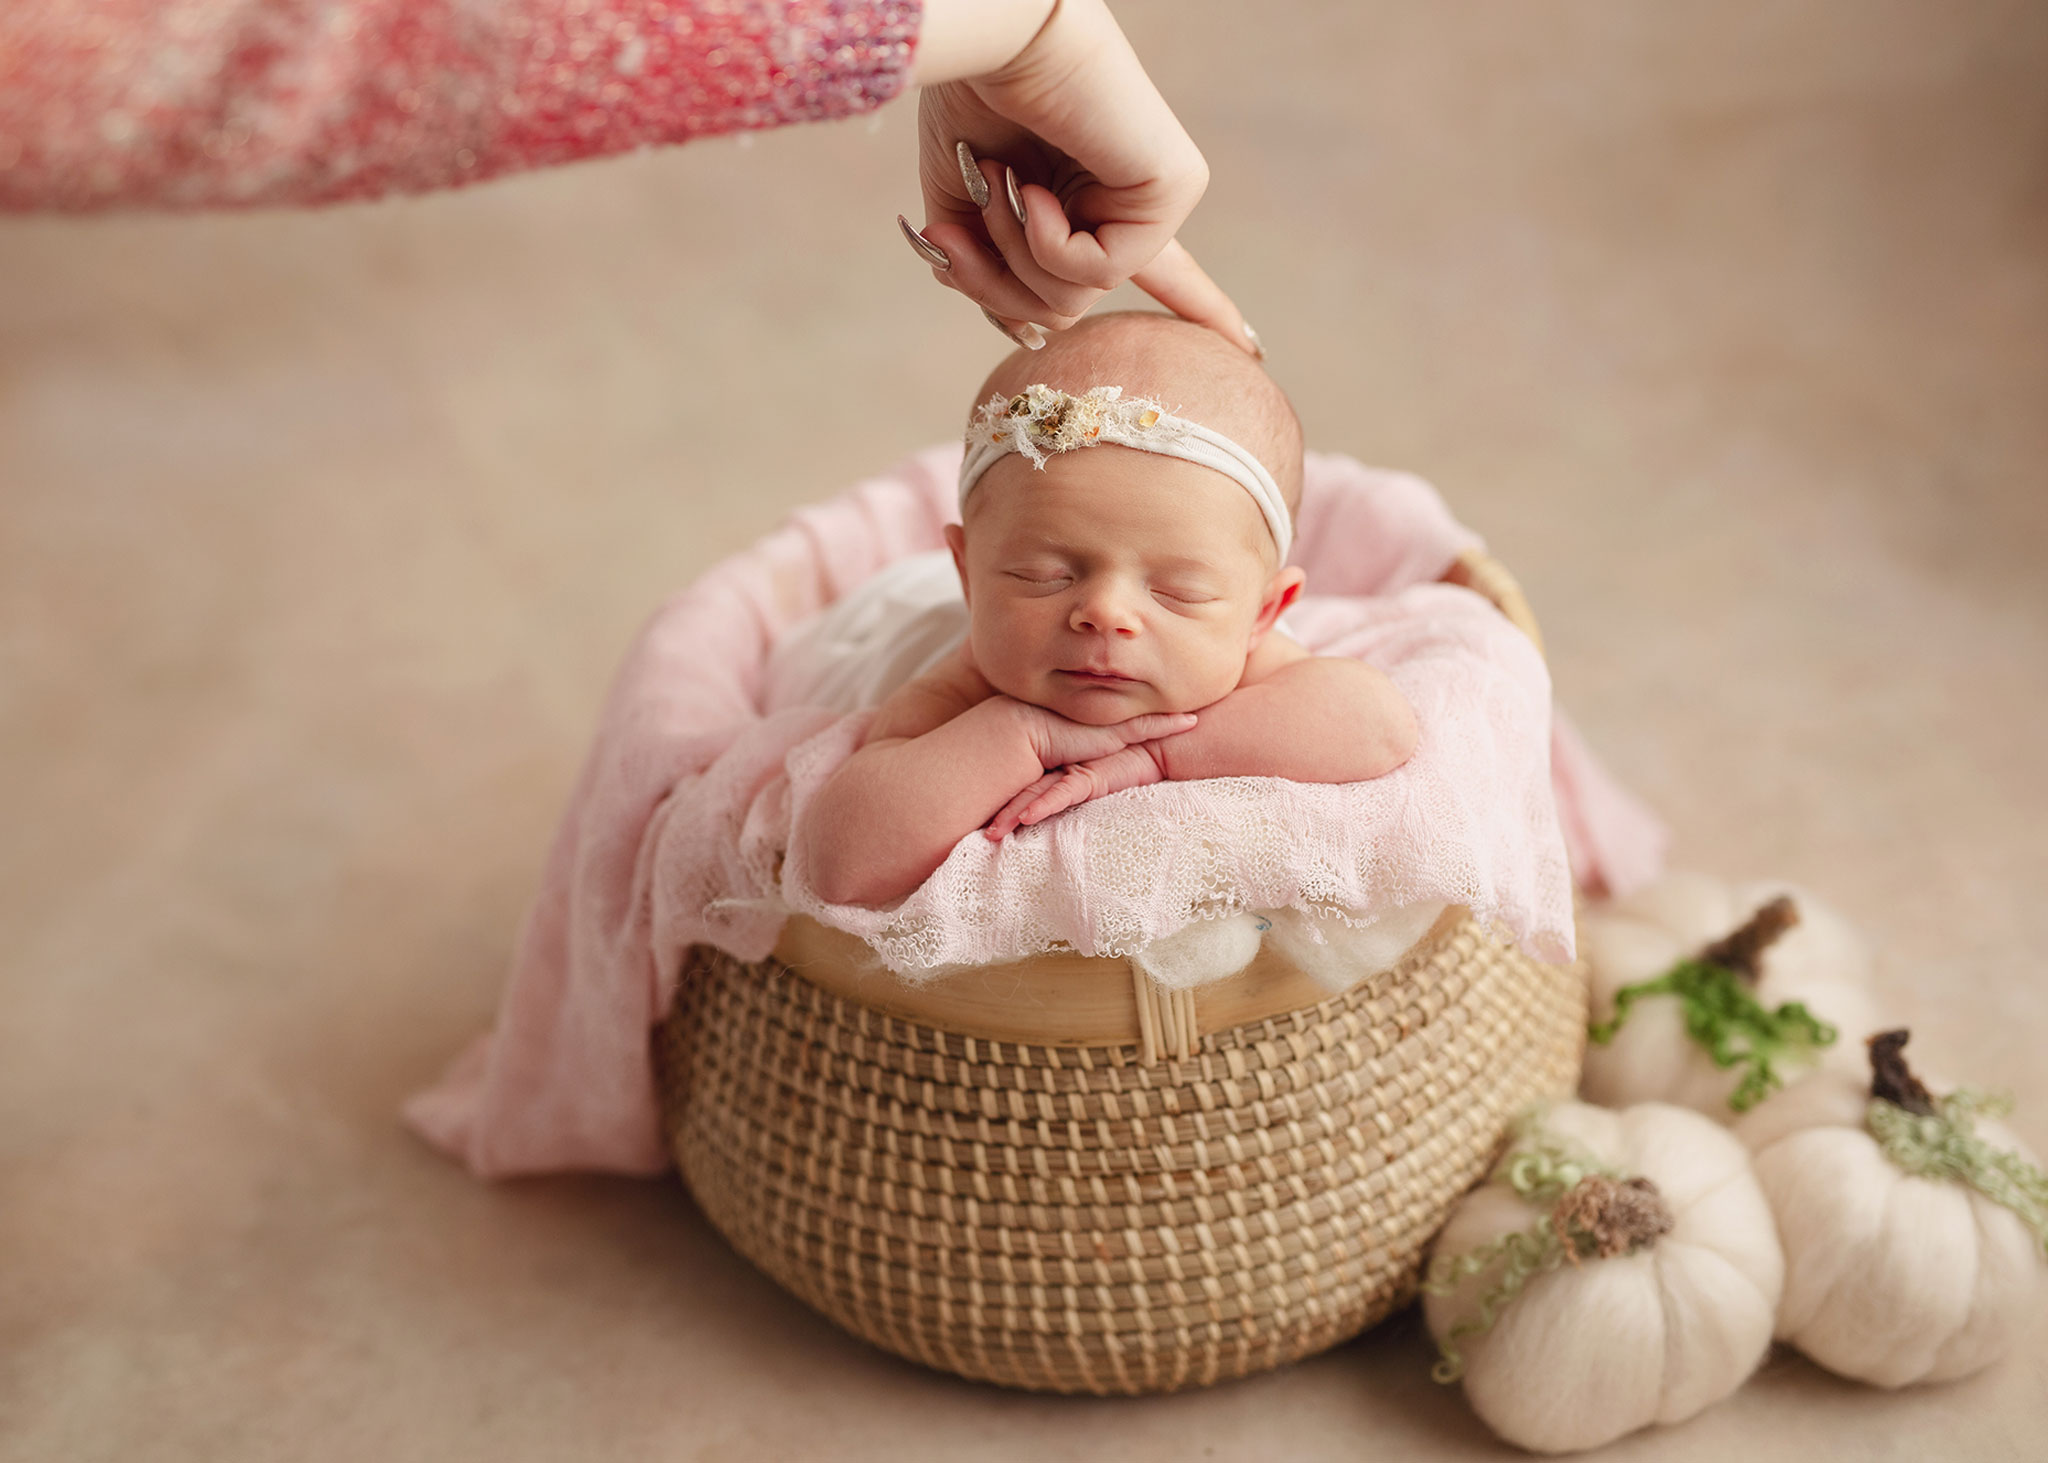 nct classes north east antenatal services pregnancy and beyond bump to baby gift ideas photo session gift voucher sunderland peterlee middlesbrough hartlepool by nina cisowska at newborn story photography studio